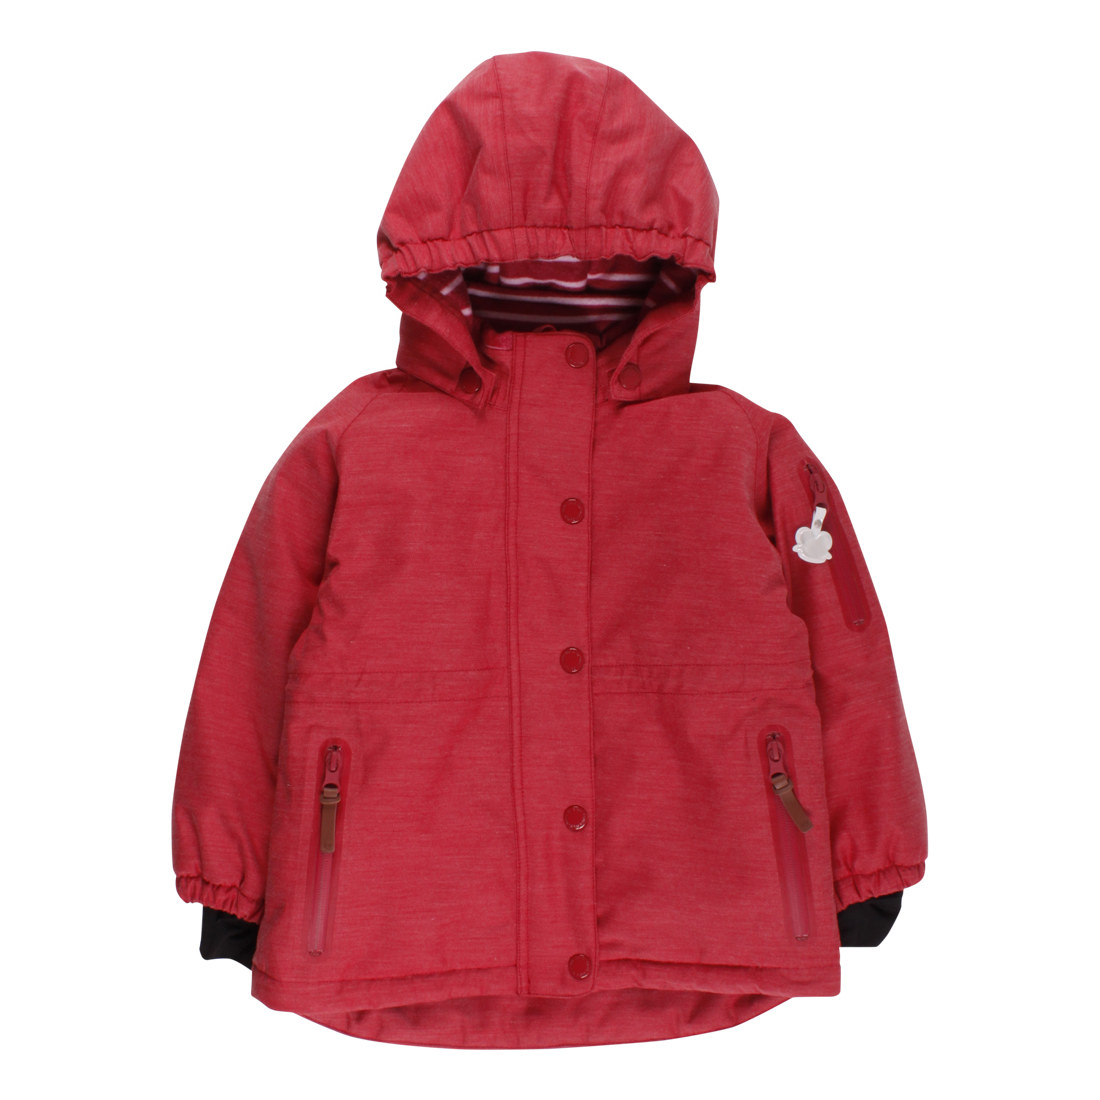 Fred's World Outdoorjacke rot